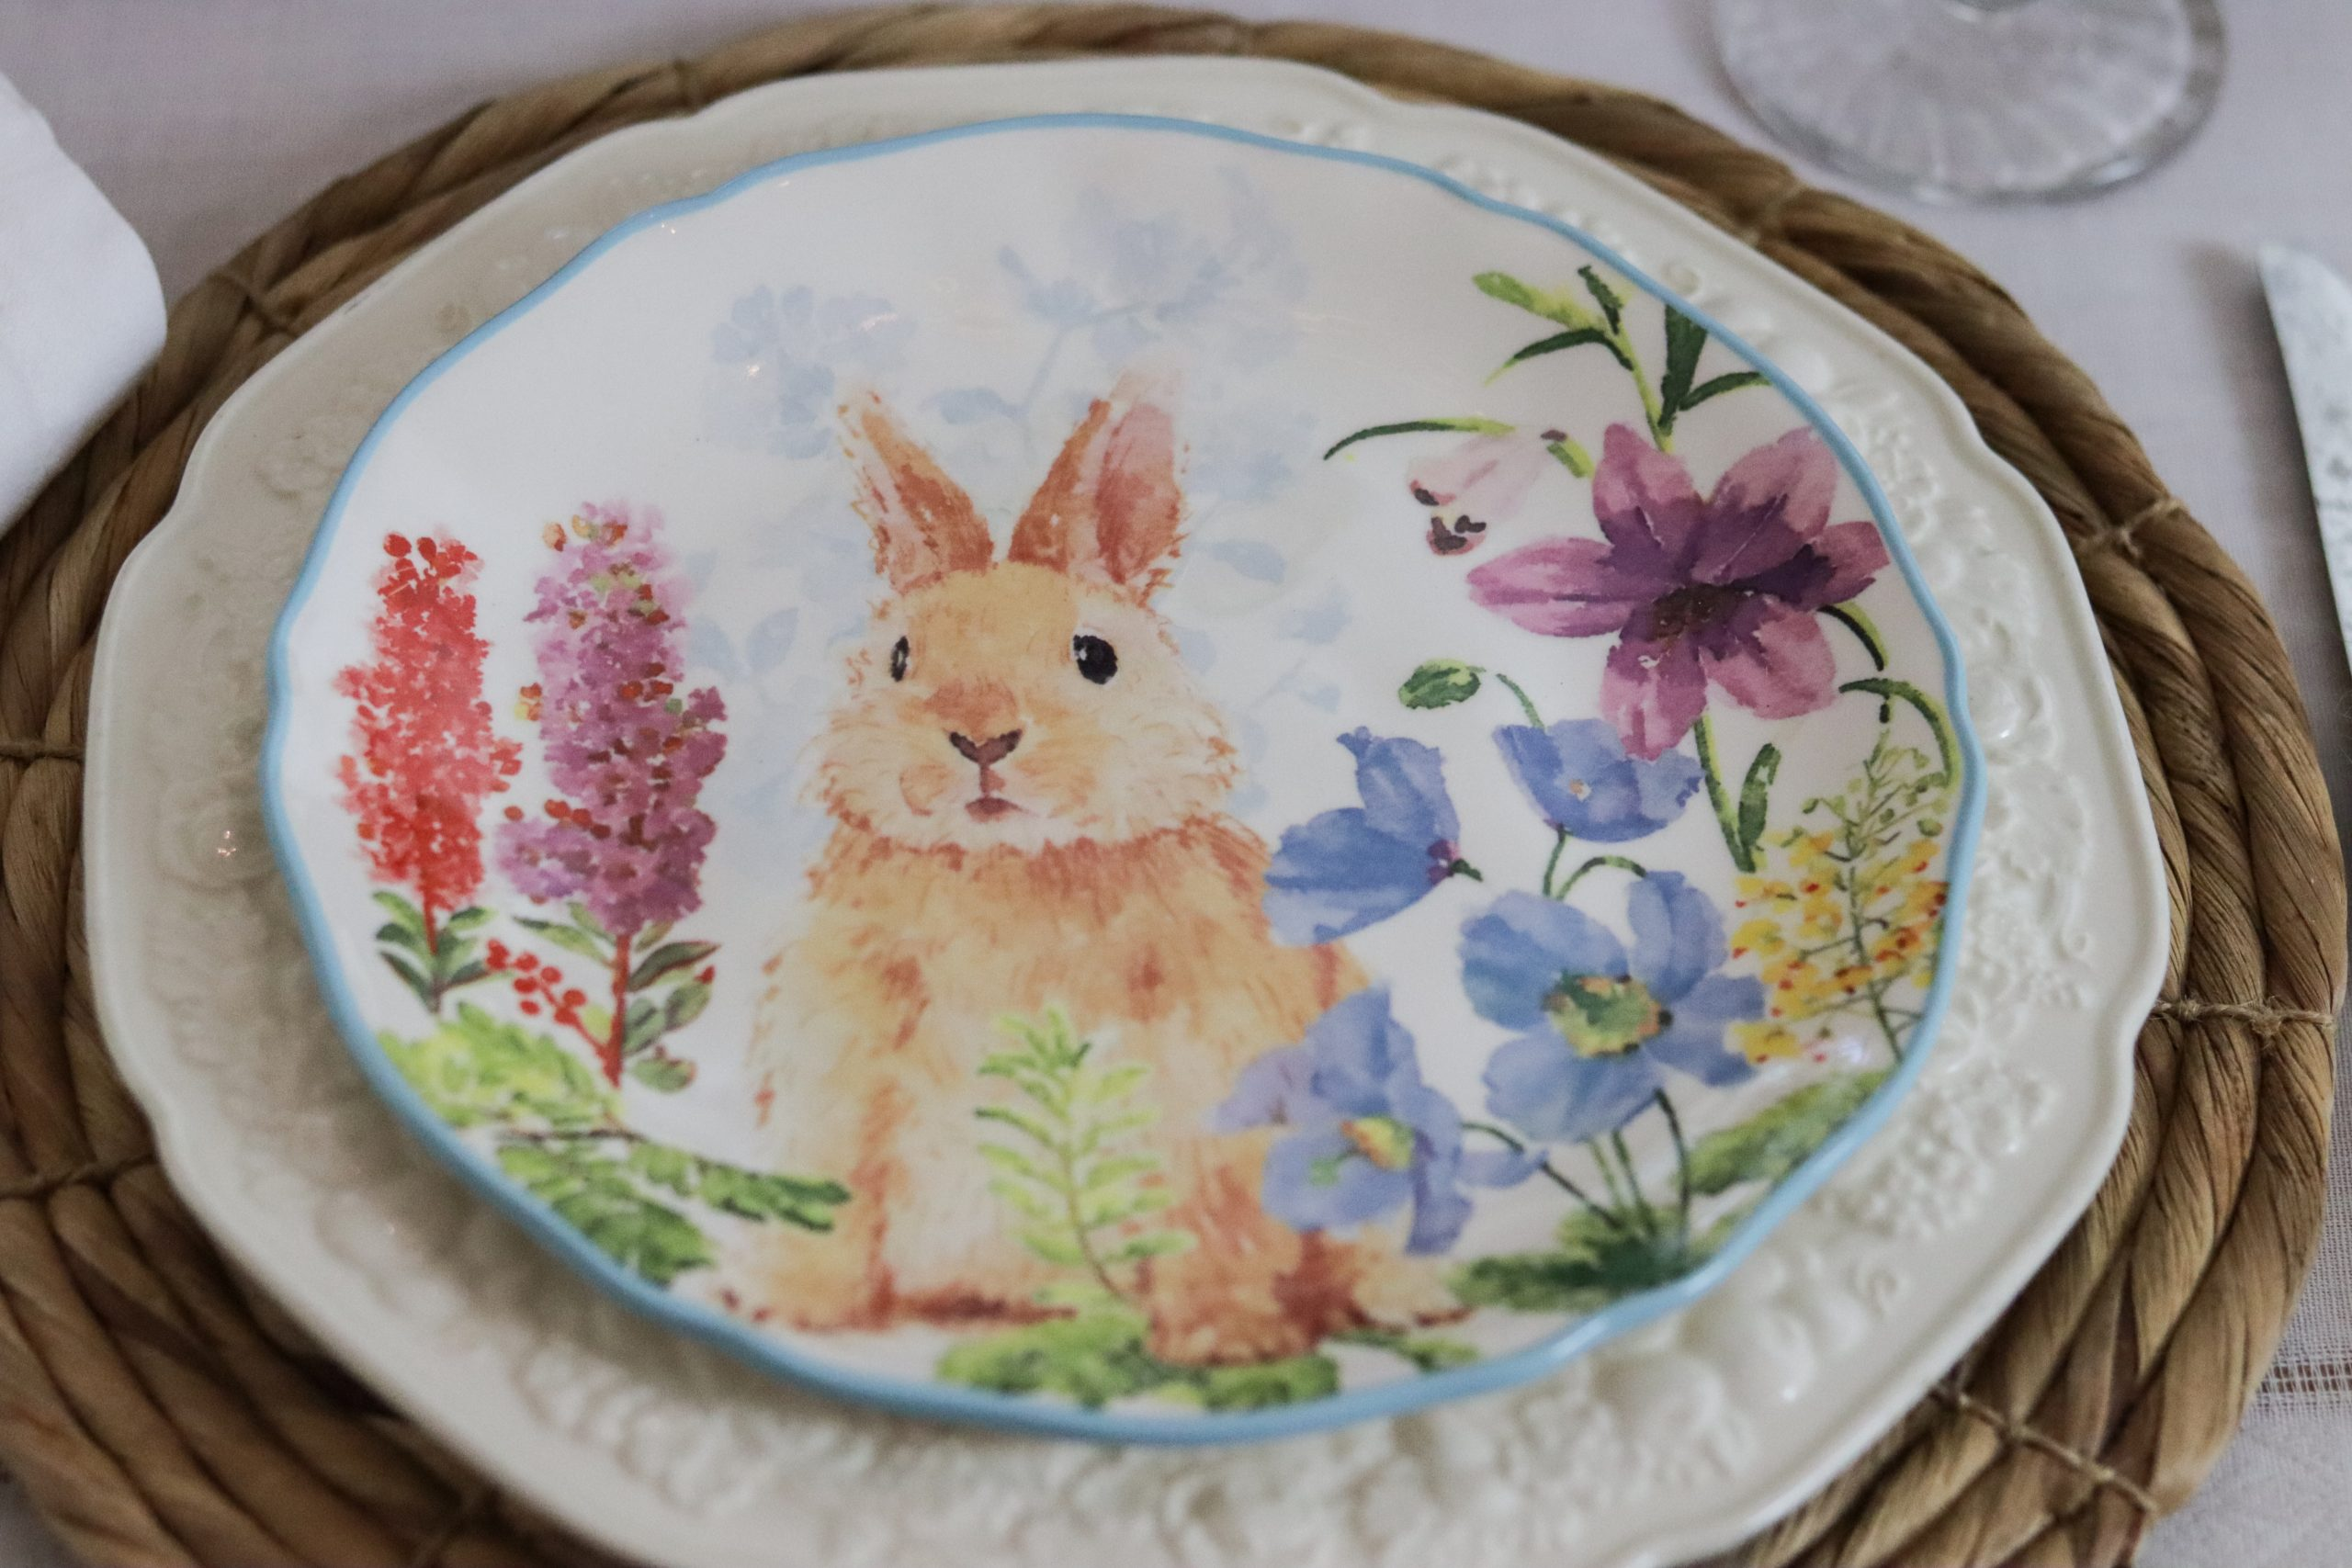 Showing natural charger, white ironstone plate and bunny plate.